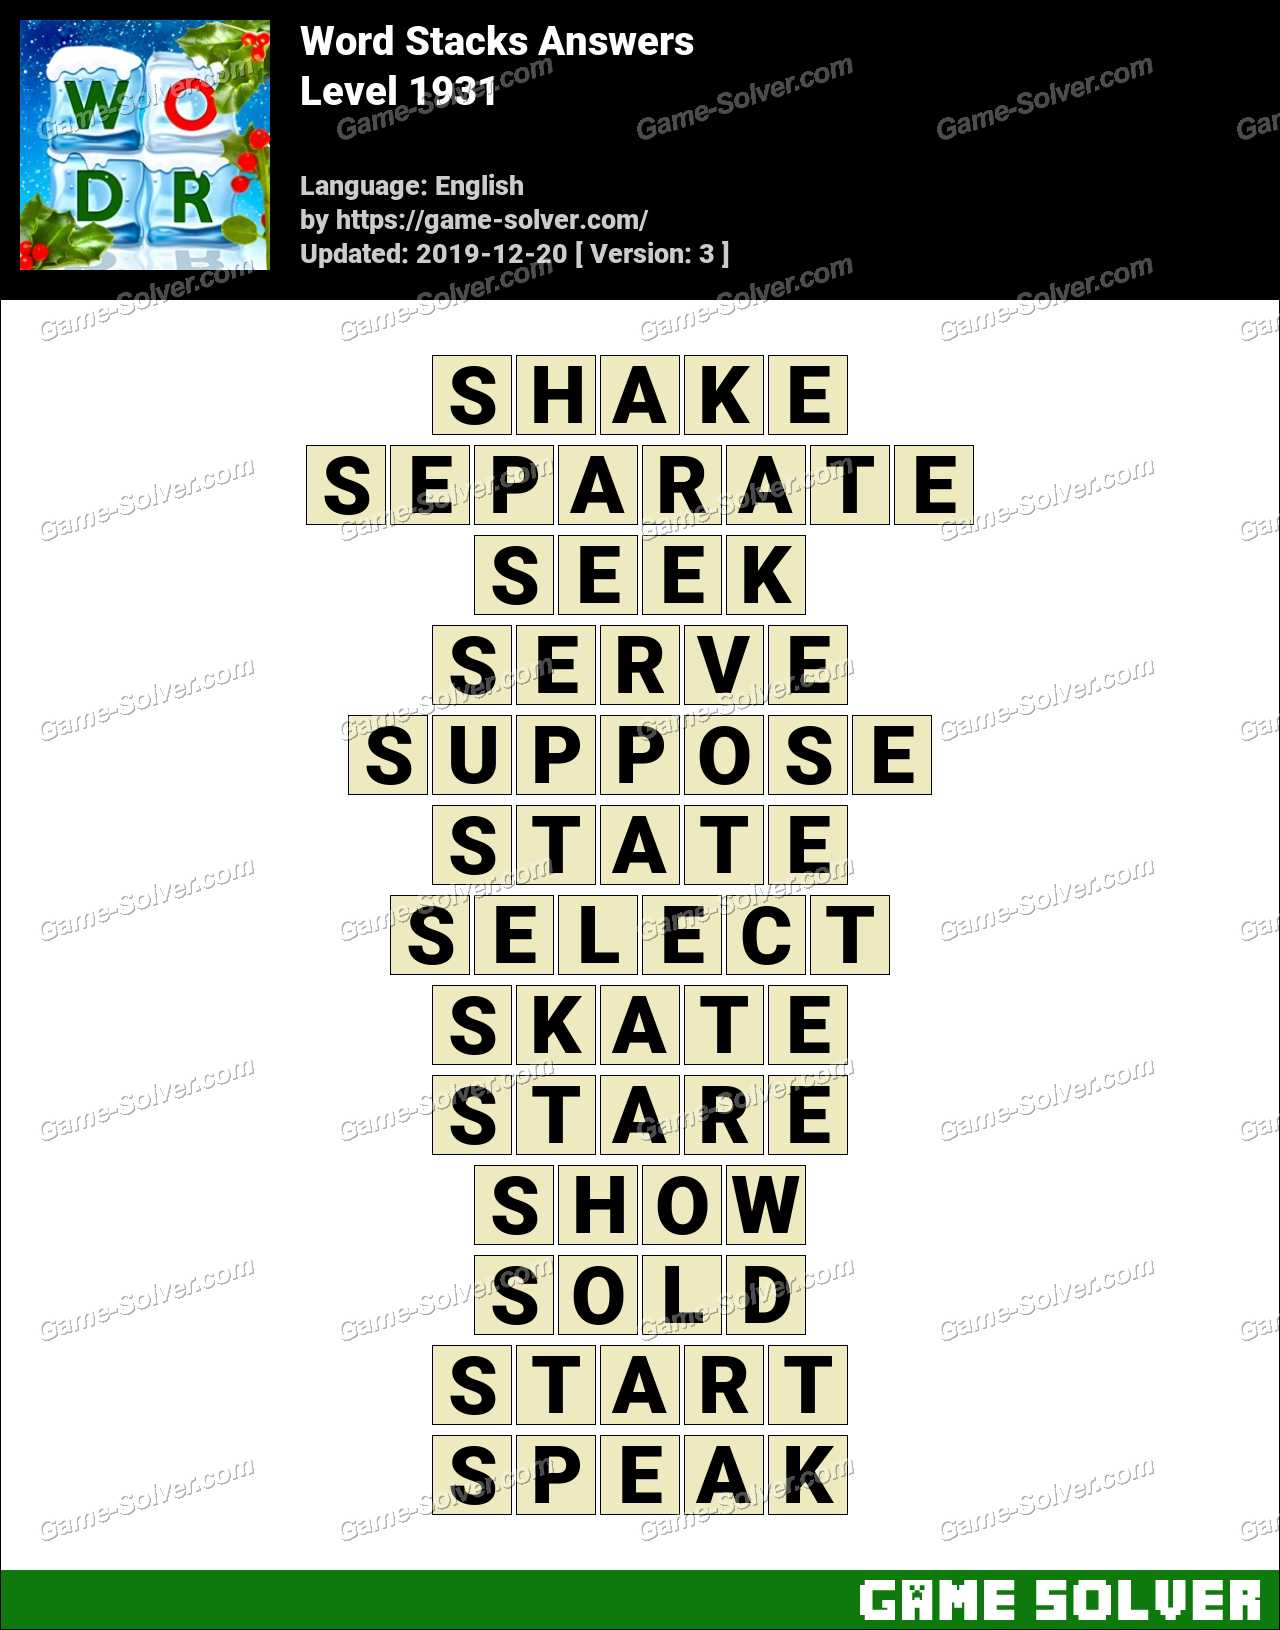 Word Stacks Level 1931 Answers